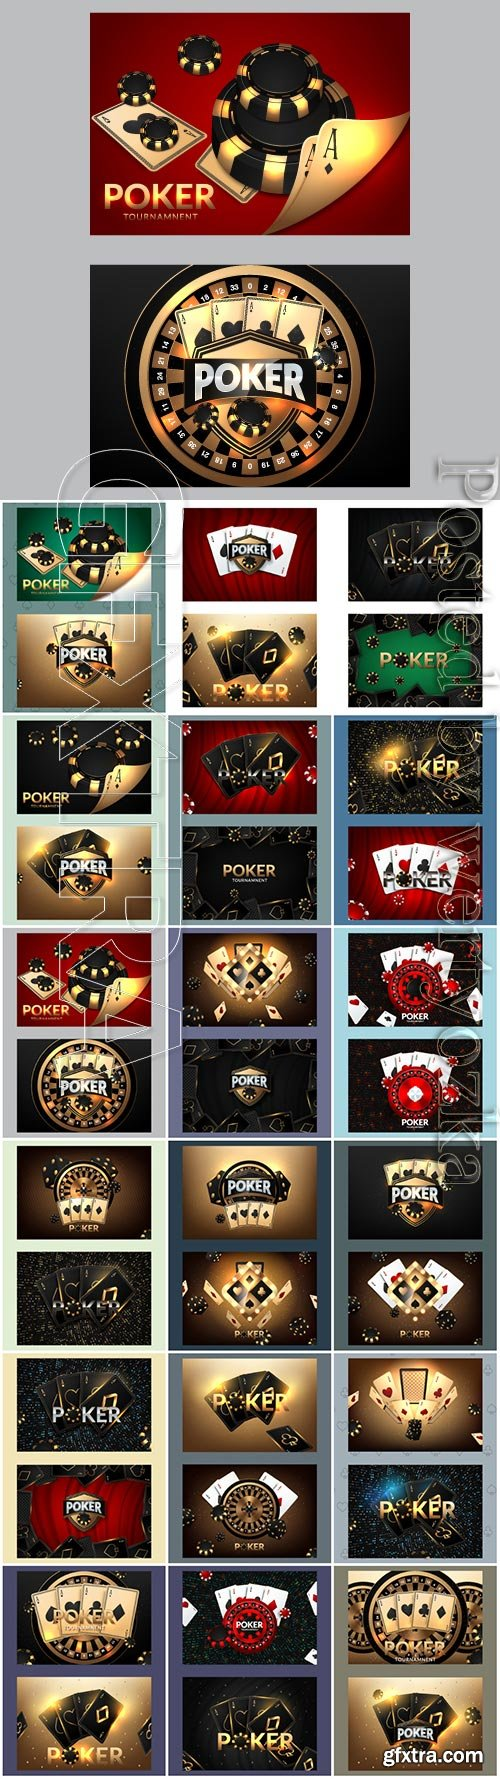 Casino poster with playing cards and poker chips